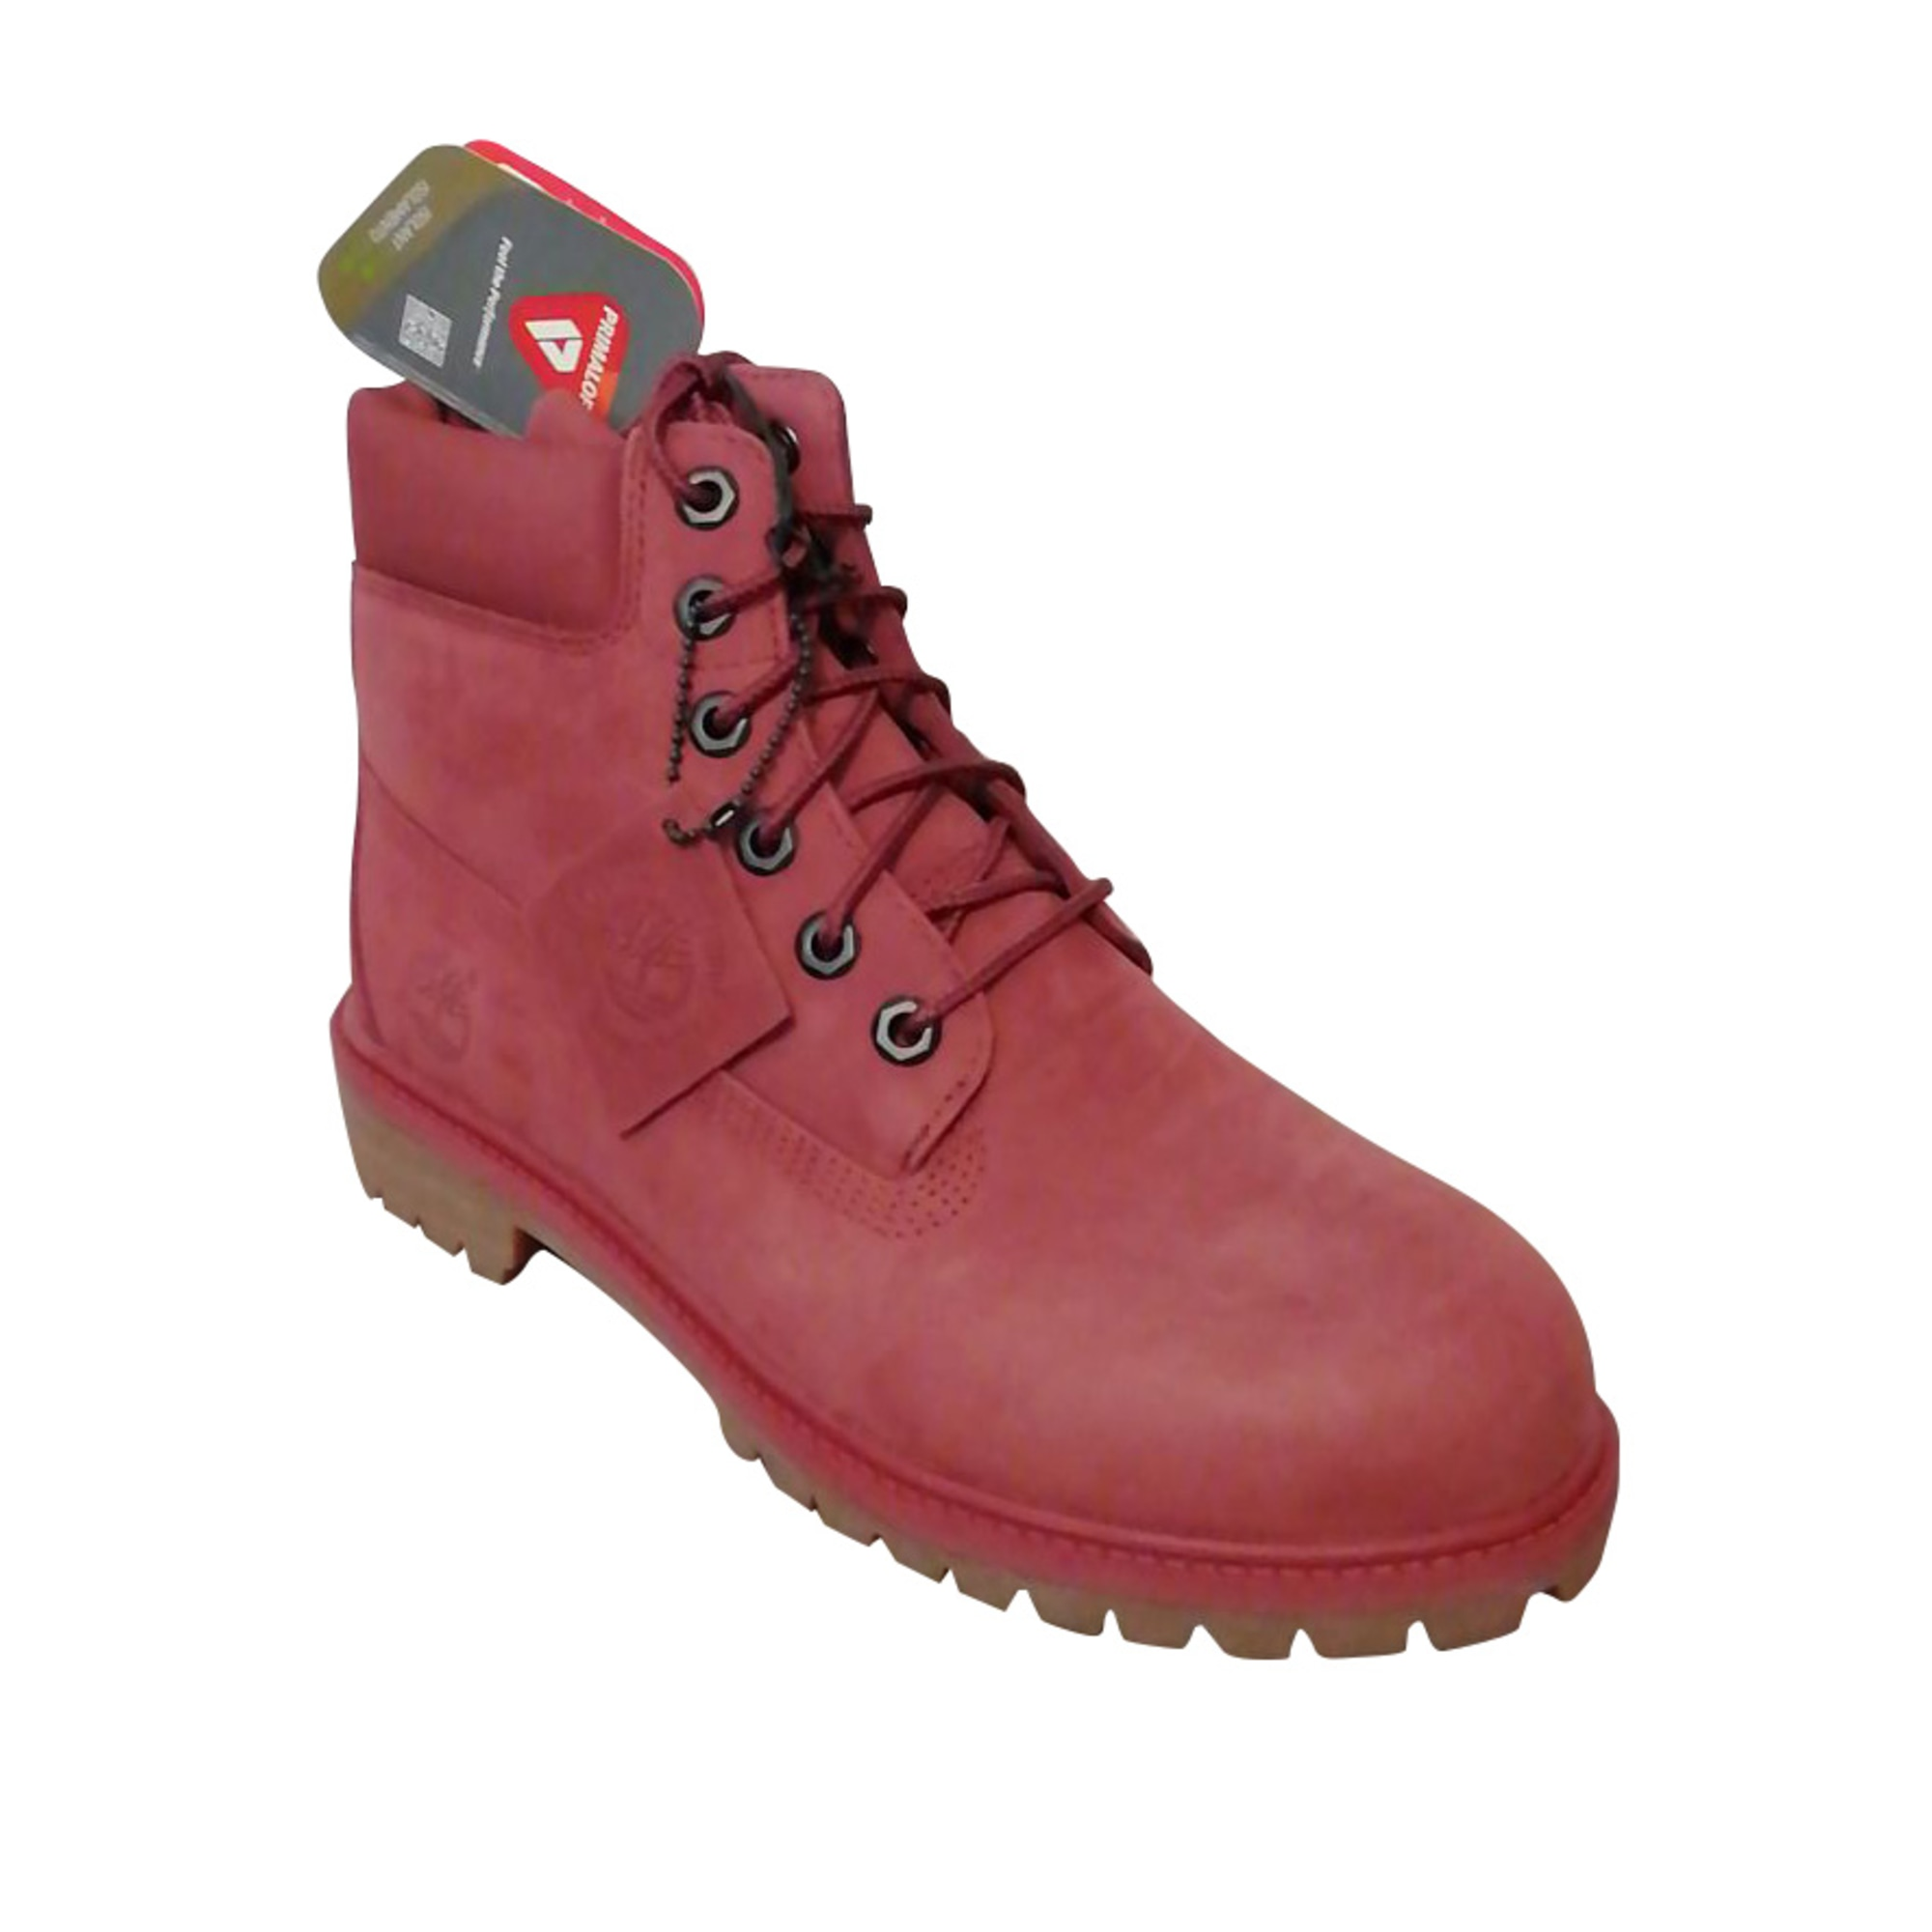 Wedge Ankle Boots TIMBERLAND Red, burgundy